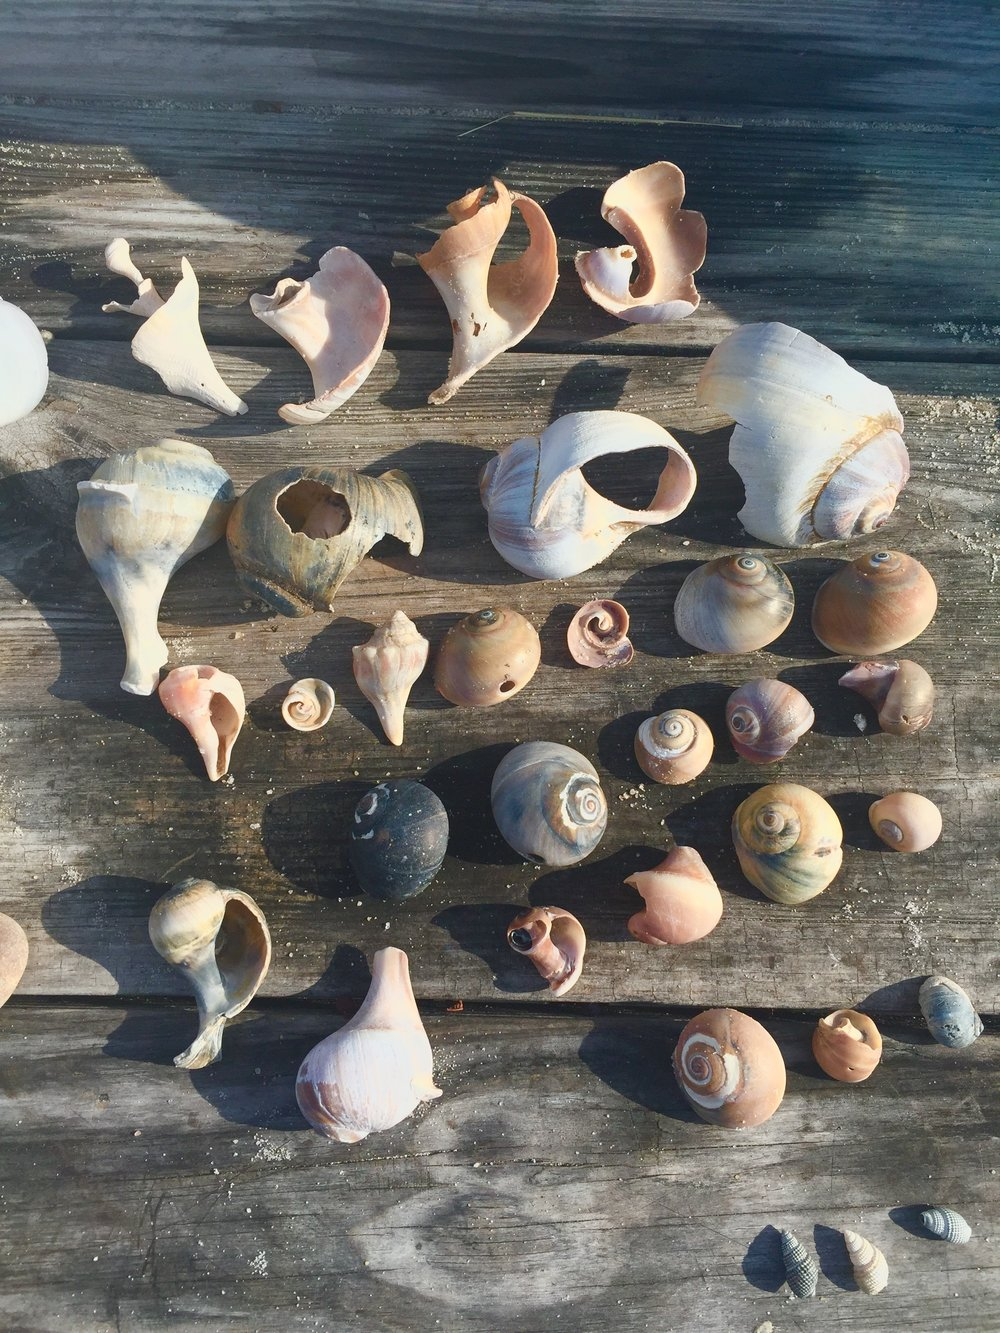 Beach Treasures: Every day I gathered, and every day I came back and laid them out in wonder. My beach treasures!